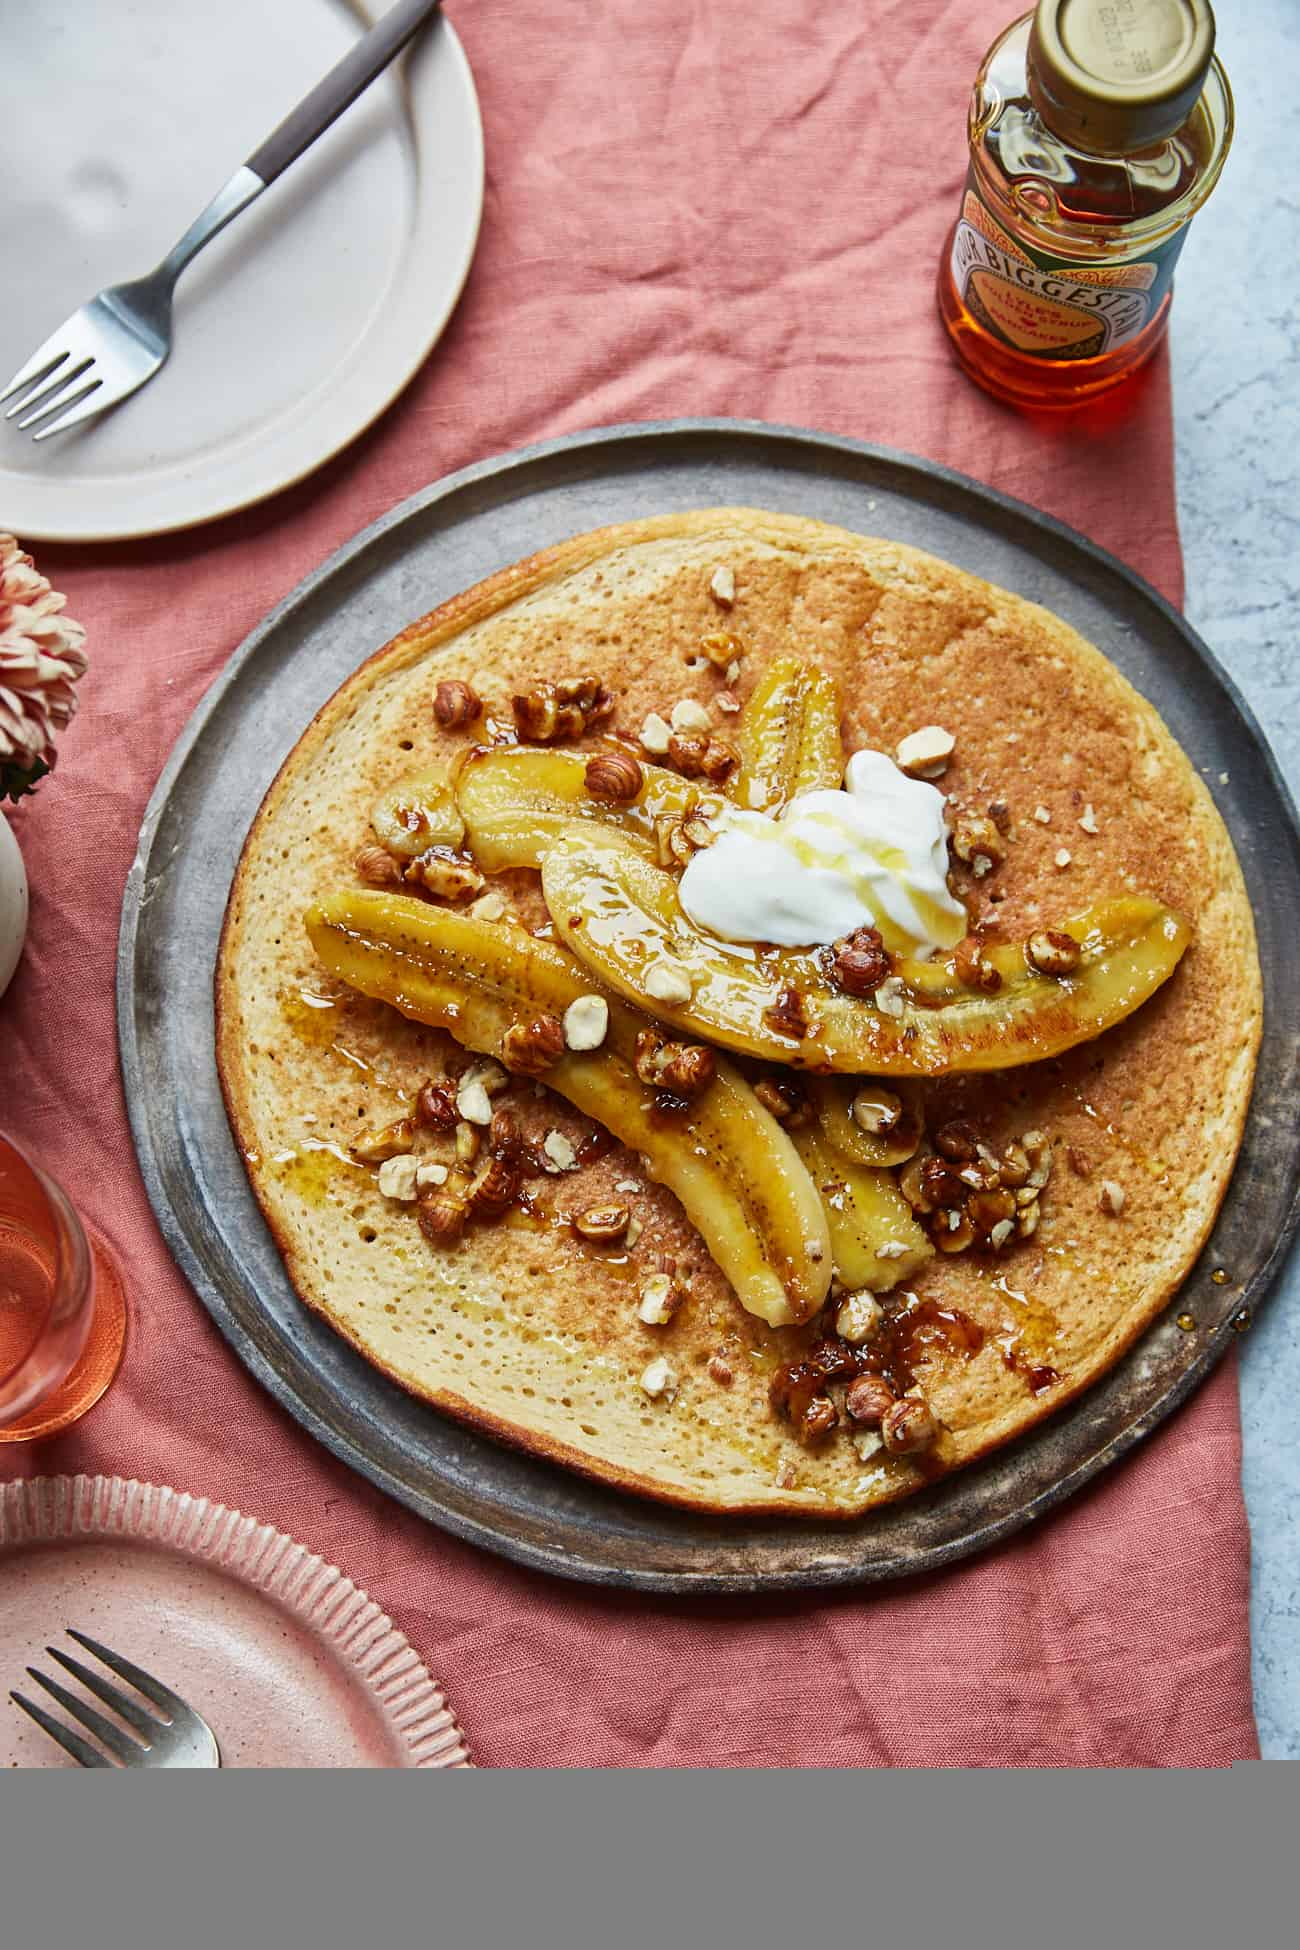 a sharing pancake topped with caramelised bananas and hazelnuts